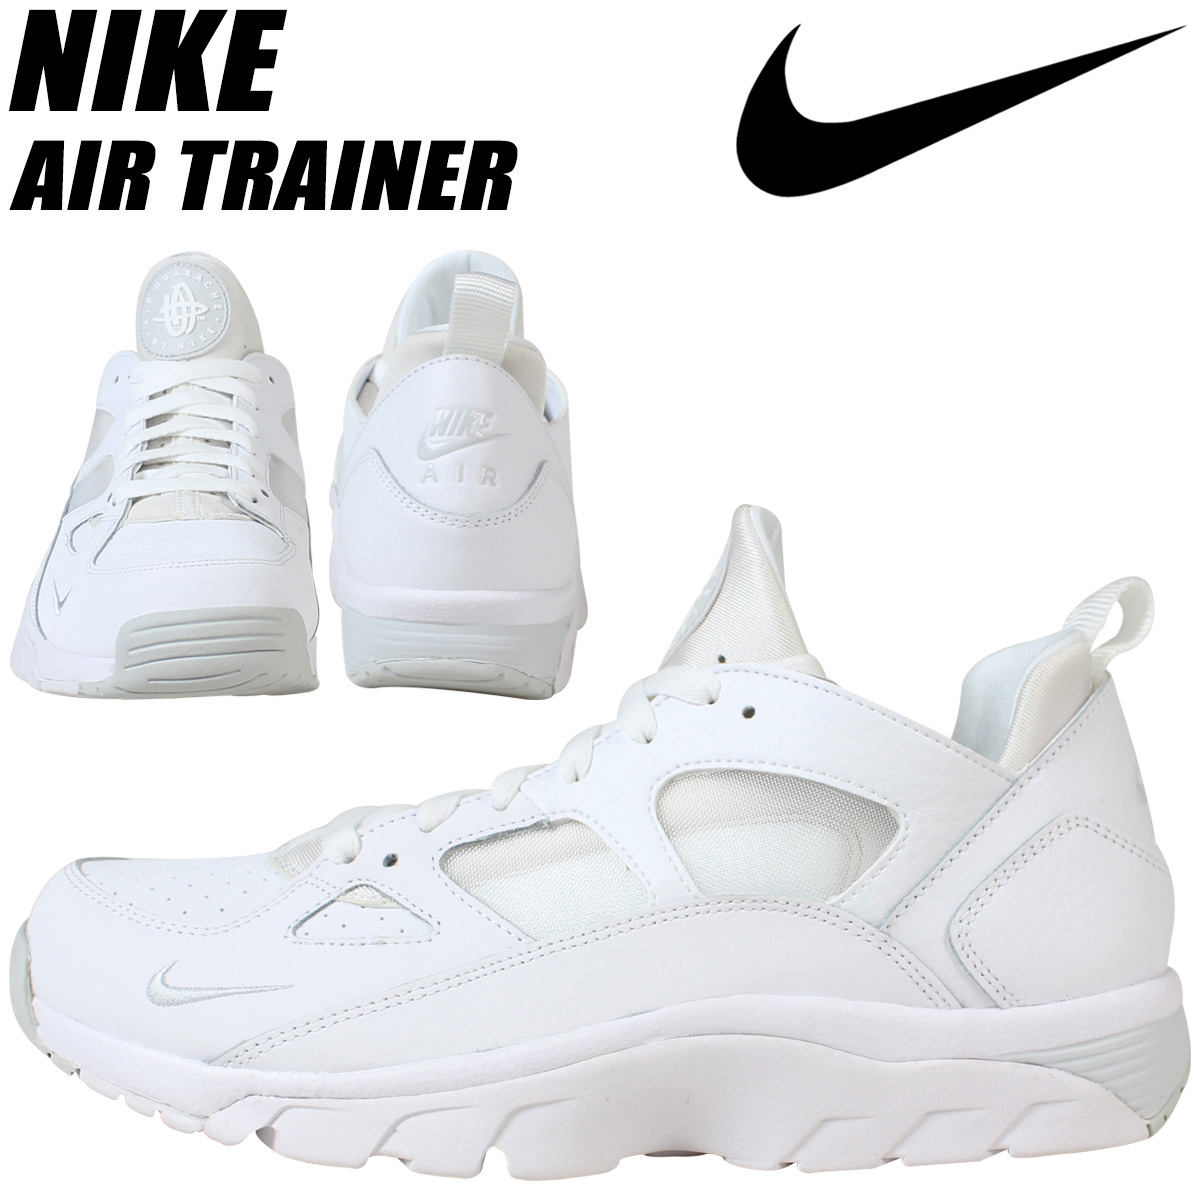 ALLSPORTS  NIKE Nike Air trainer sneakers AIR TRAINER HUARACHE LOW 749447-110  men s shoes white  e15160ef3